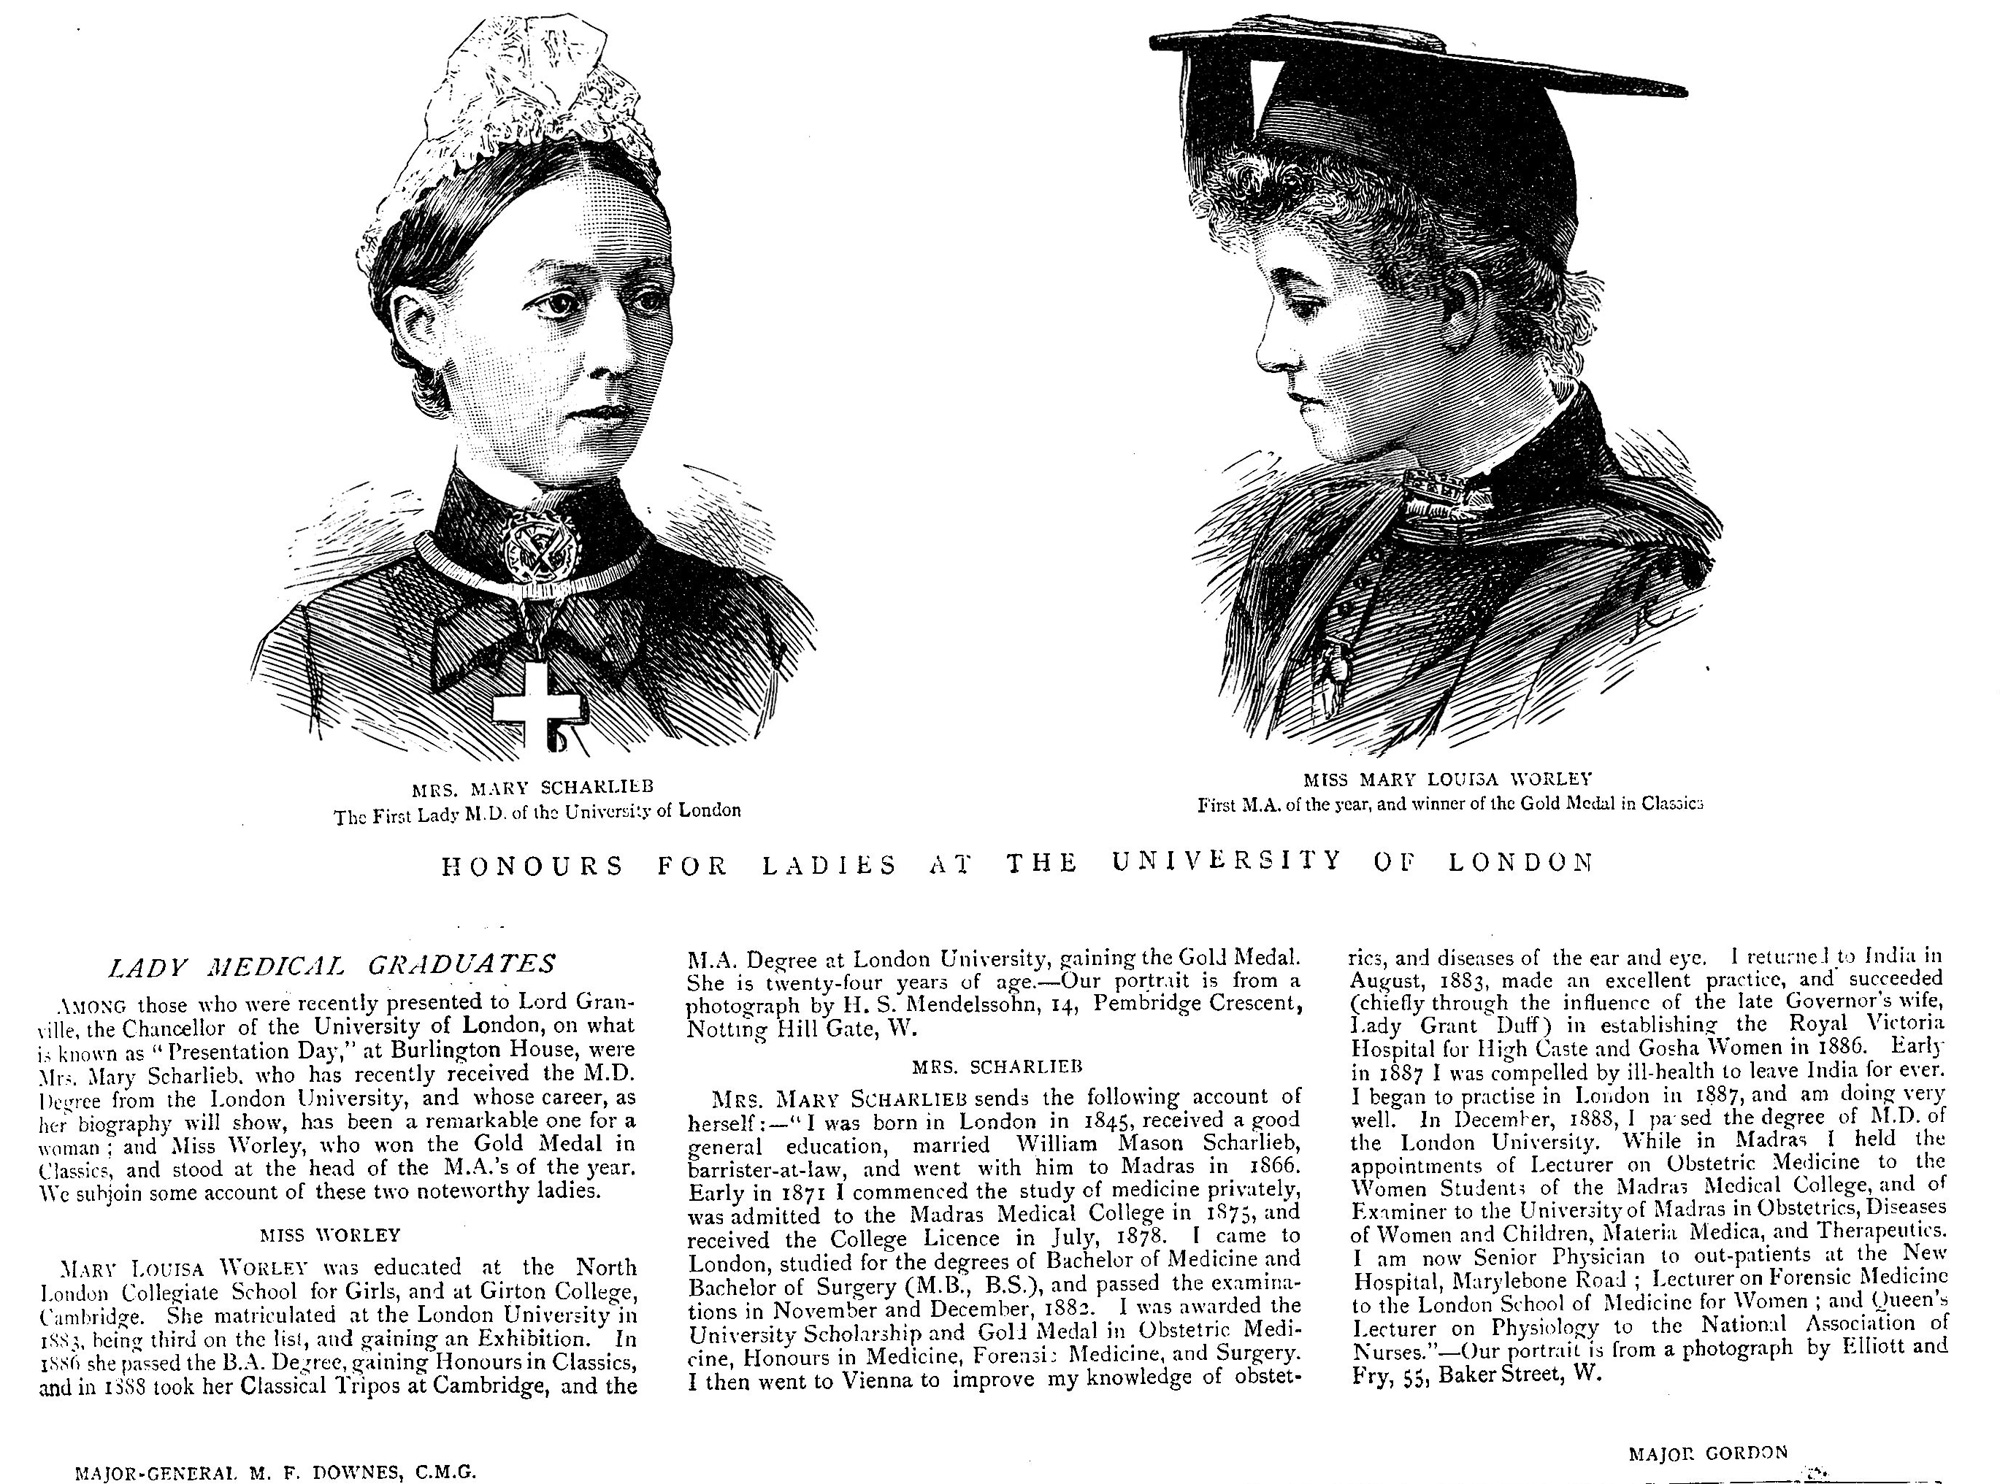 Newspaper article about female medical graduates at the University of London